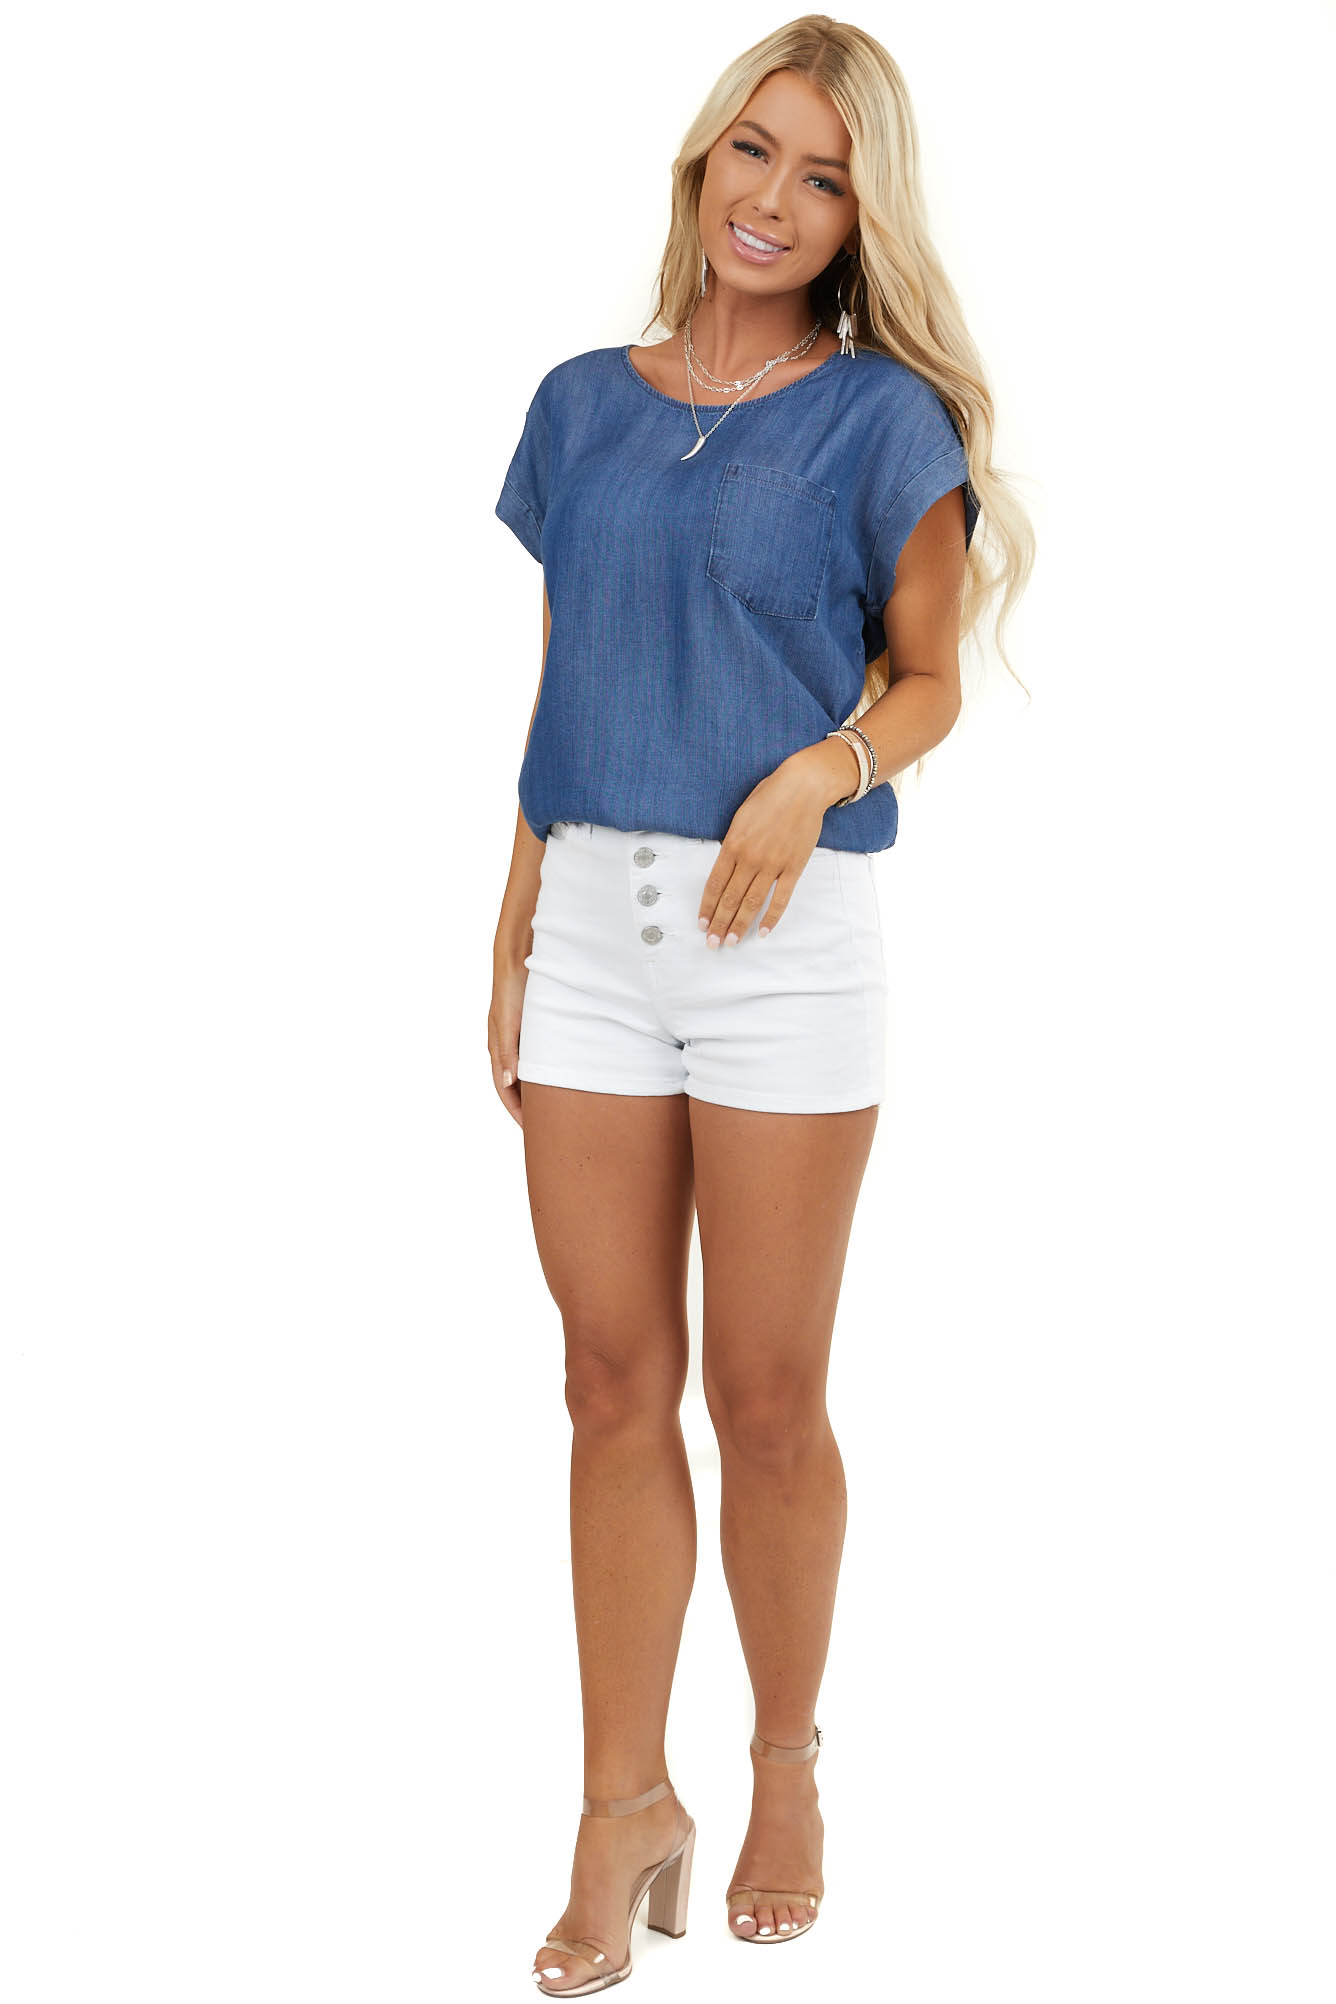 Medium Wash Denim Top with Chest Pocket and Buttoned Back